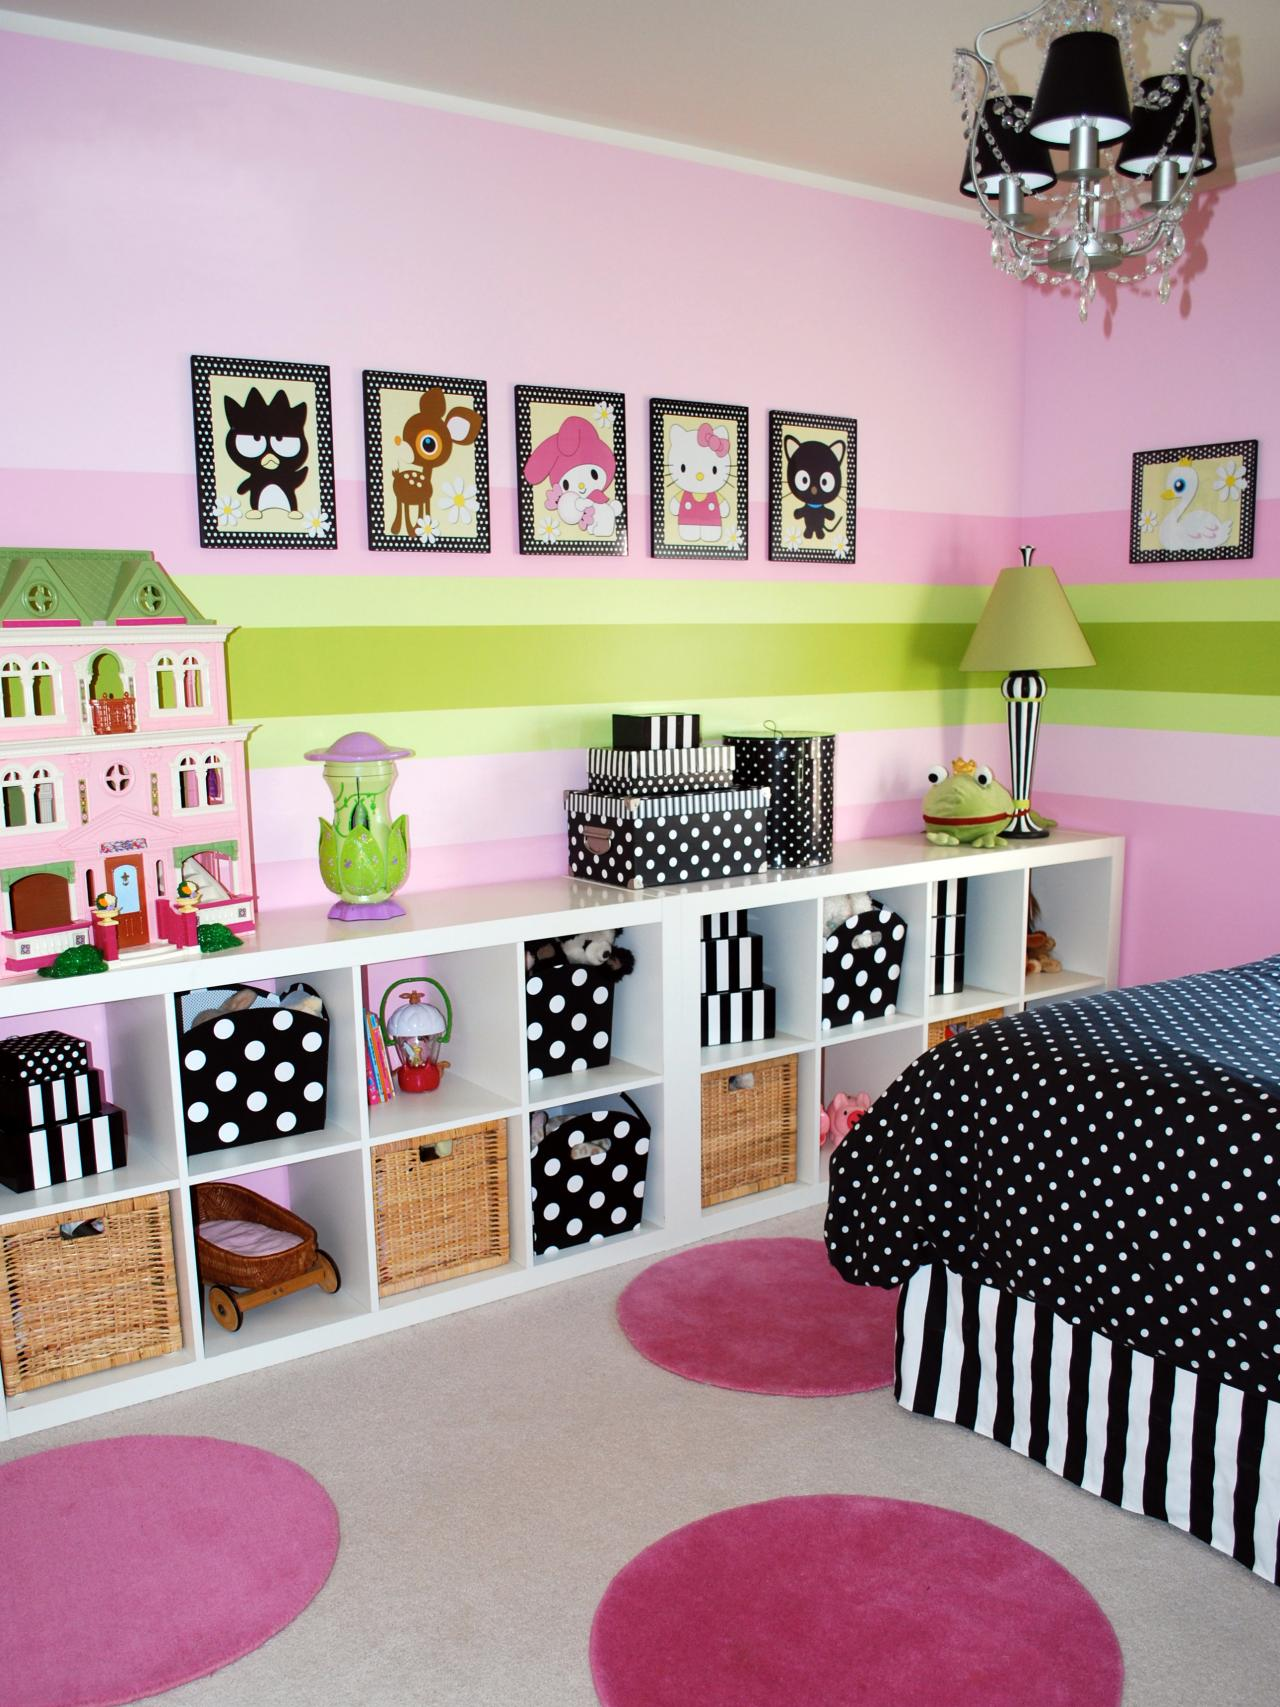 Kids Room Ideas For Girls 10 Decorating Ideas For Kids 39 Rooms Hgtv